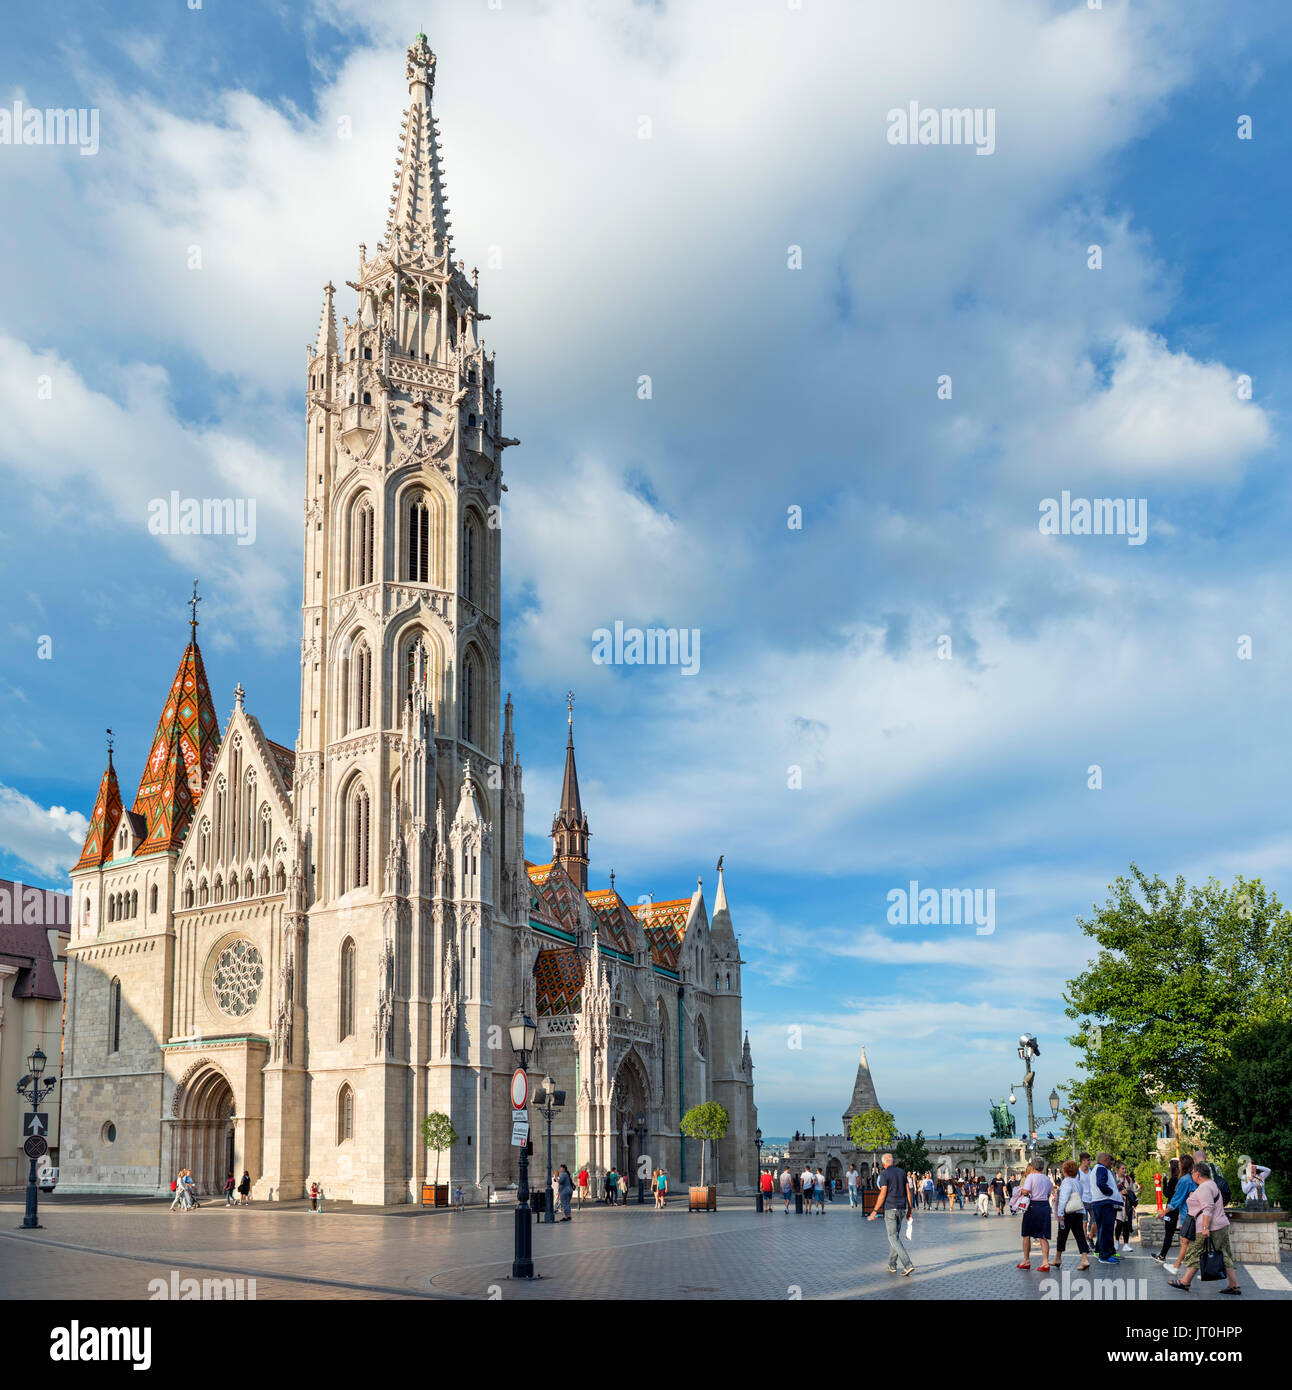 Matthias Church with Fishermen's Bastion behind, Buda Castle district, Castle Hill, Budapest, Hungary - Stock Image